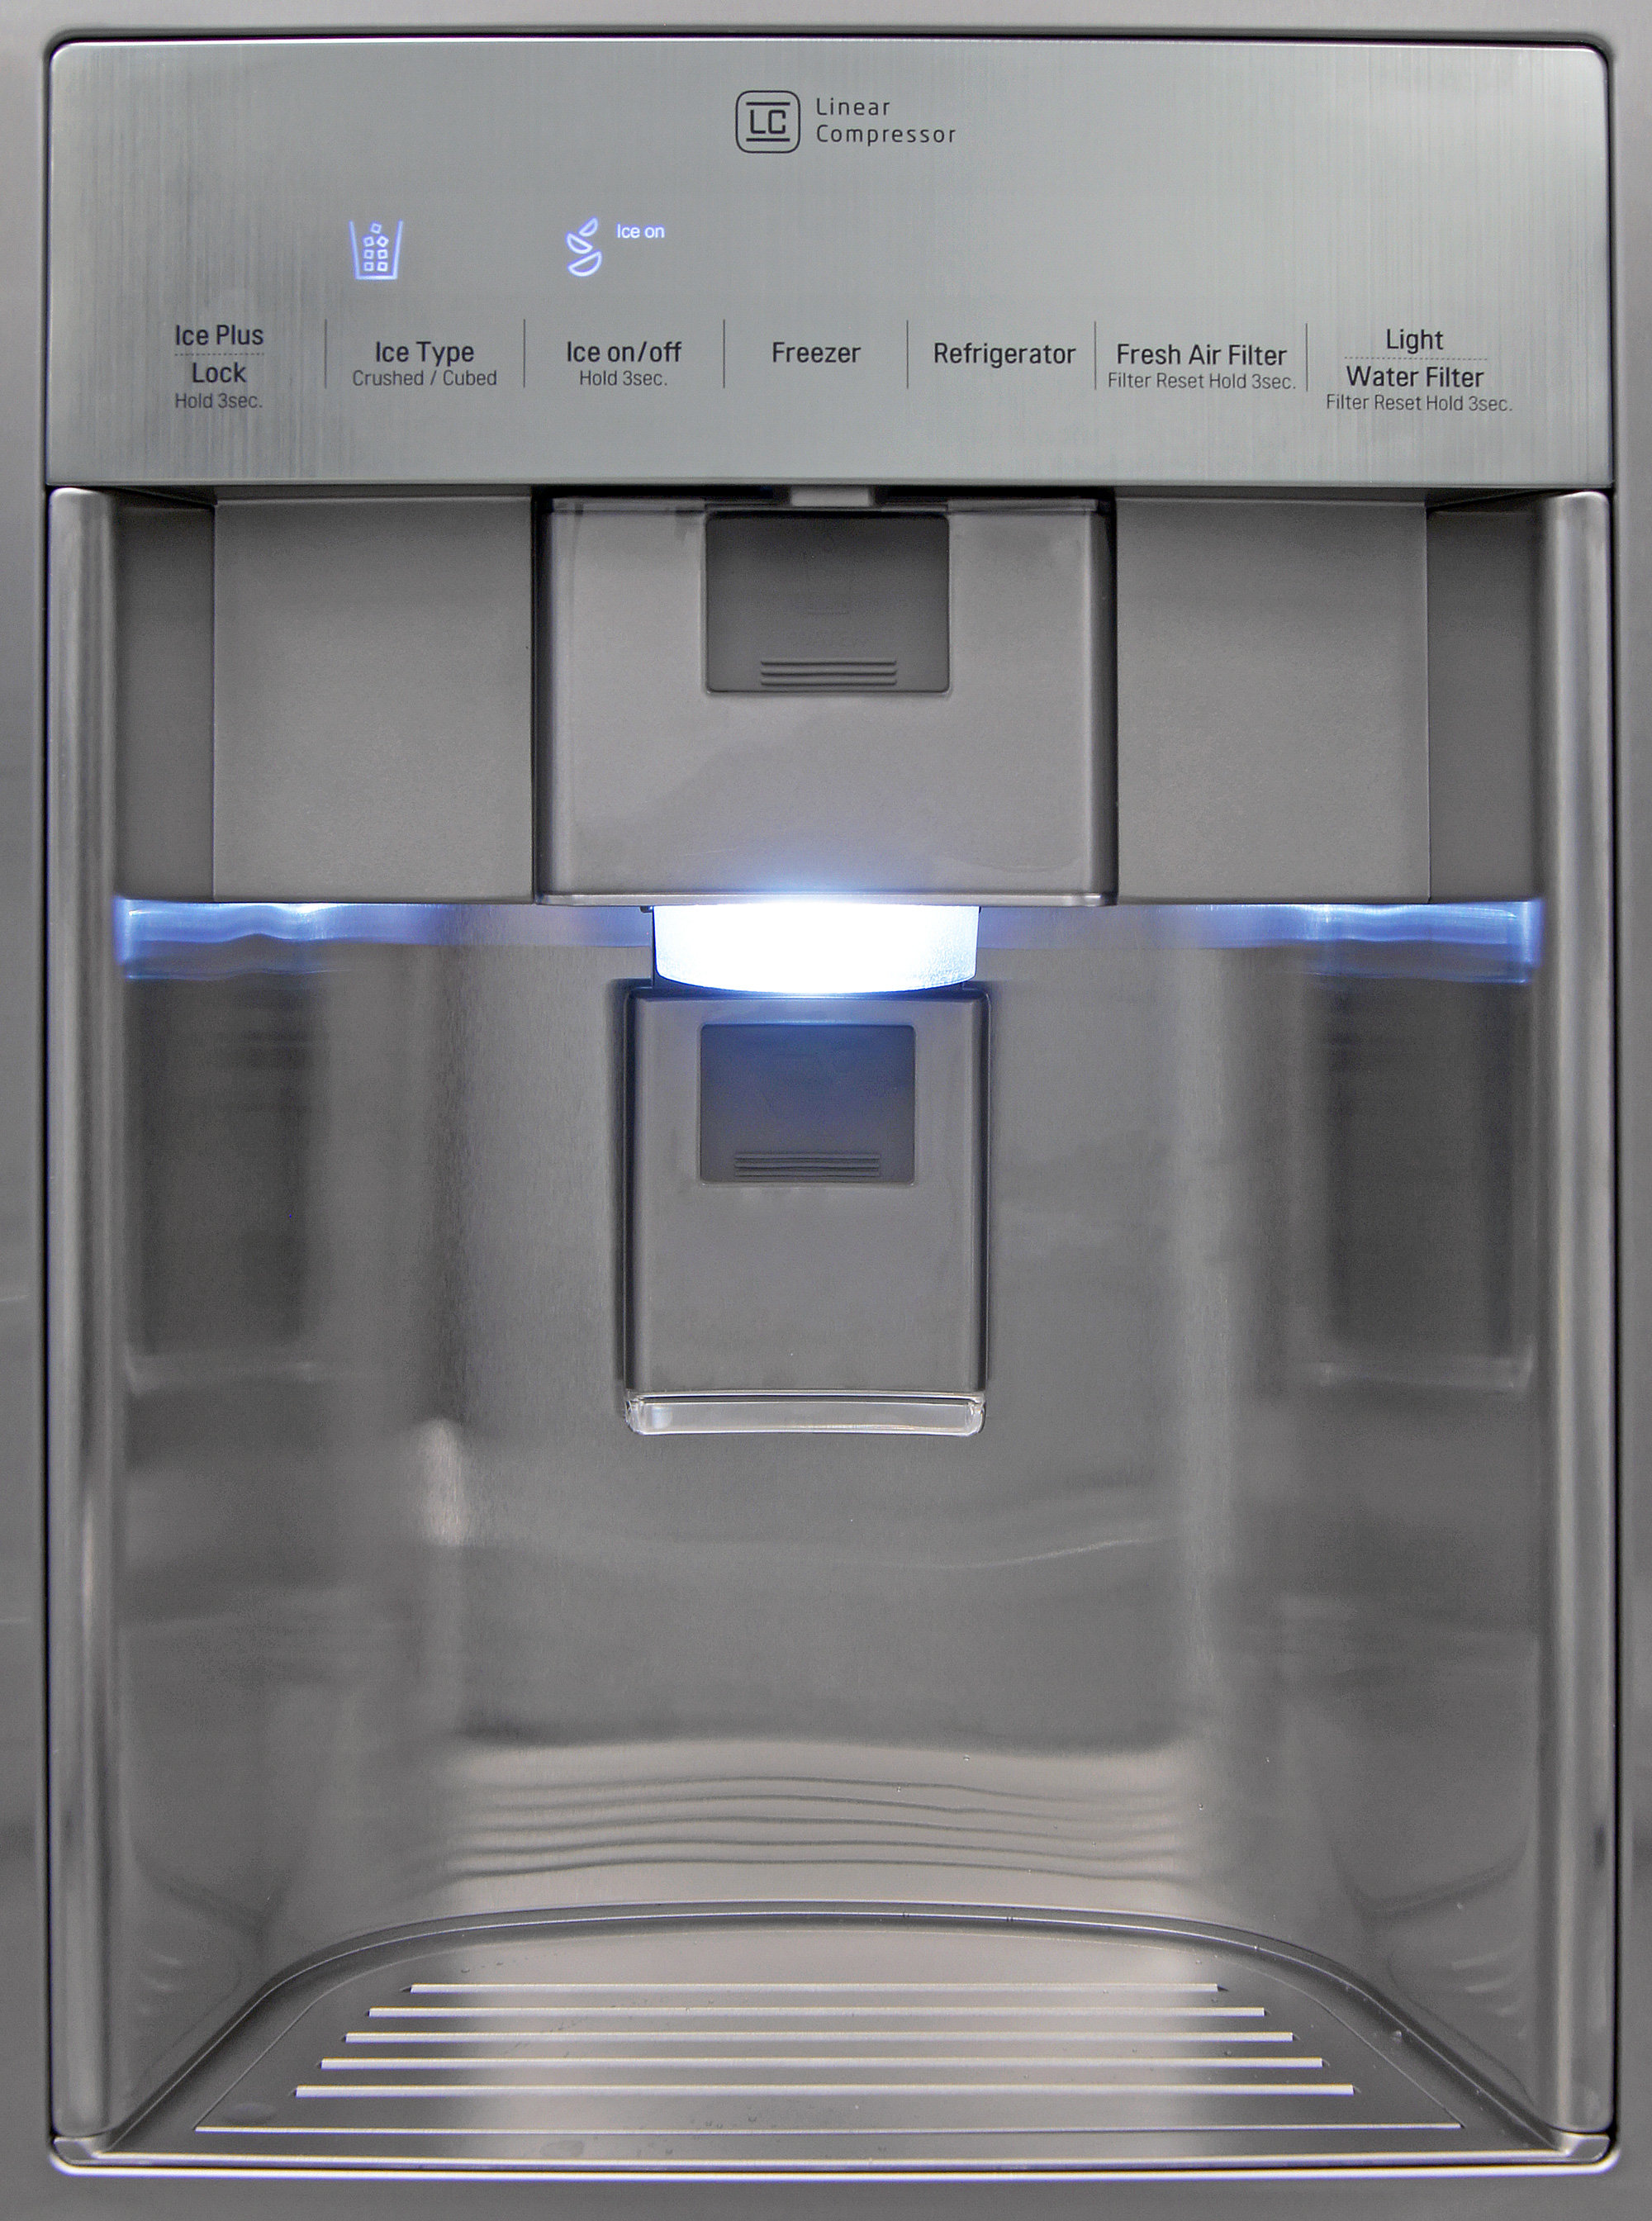 The LG LSC22991ST's dispenser is easy to use, and gives you enough height for a standard drinking glass.